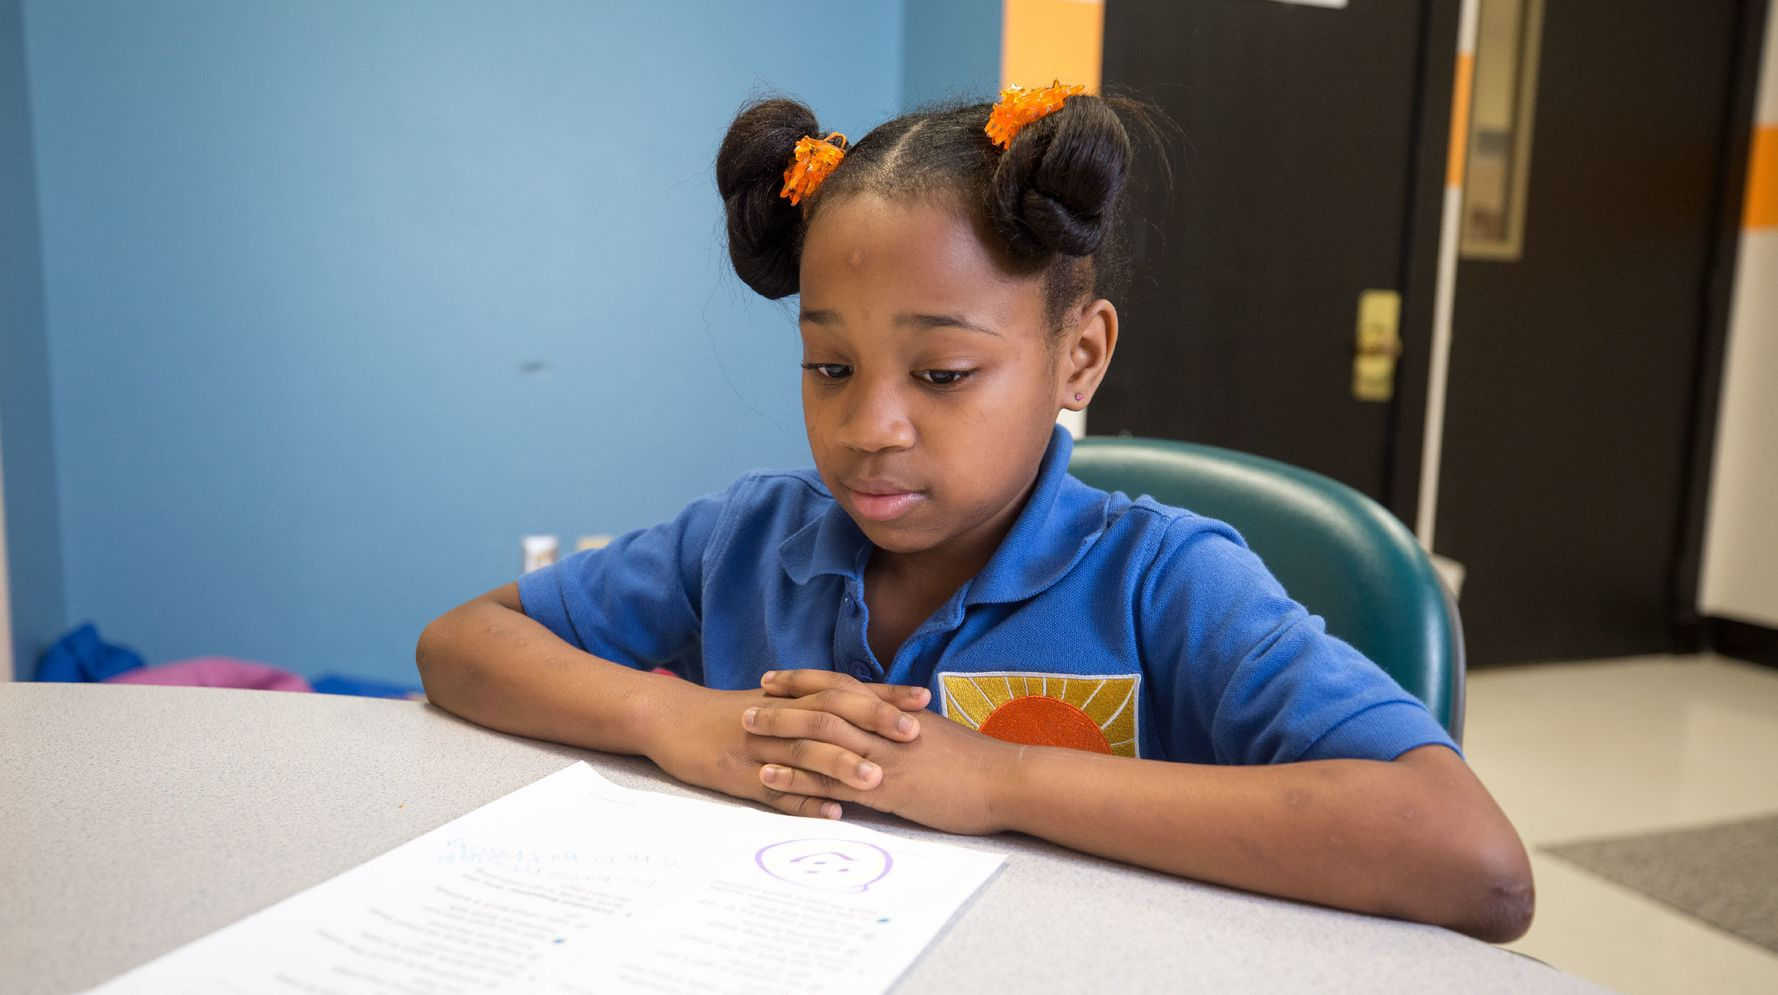 Trauma Is Norm For Many New Orleans >> Trauma Is The Norm For Many New Orleans Kids This School Was Made